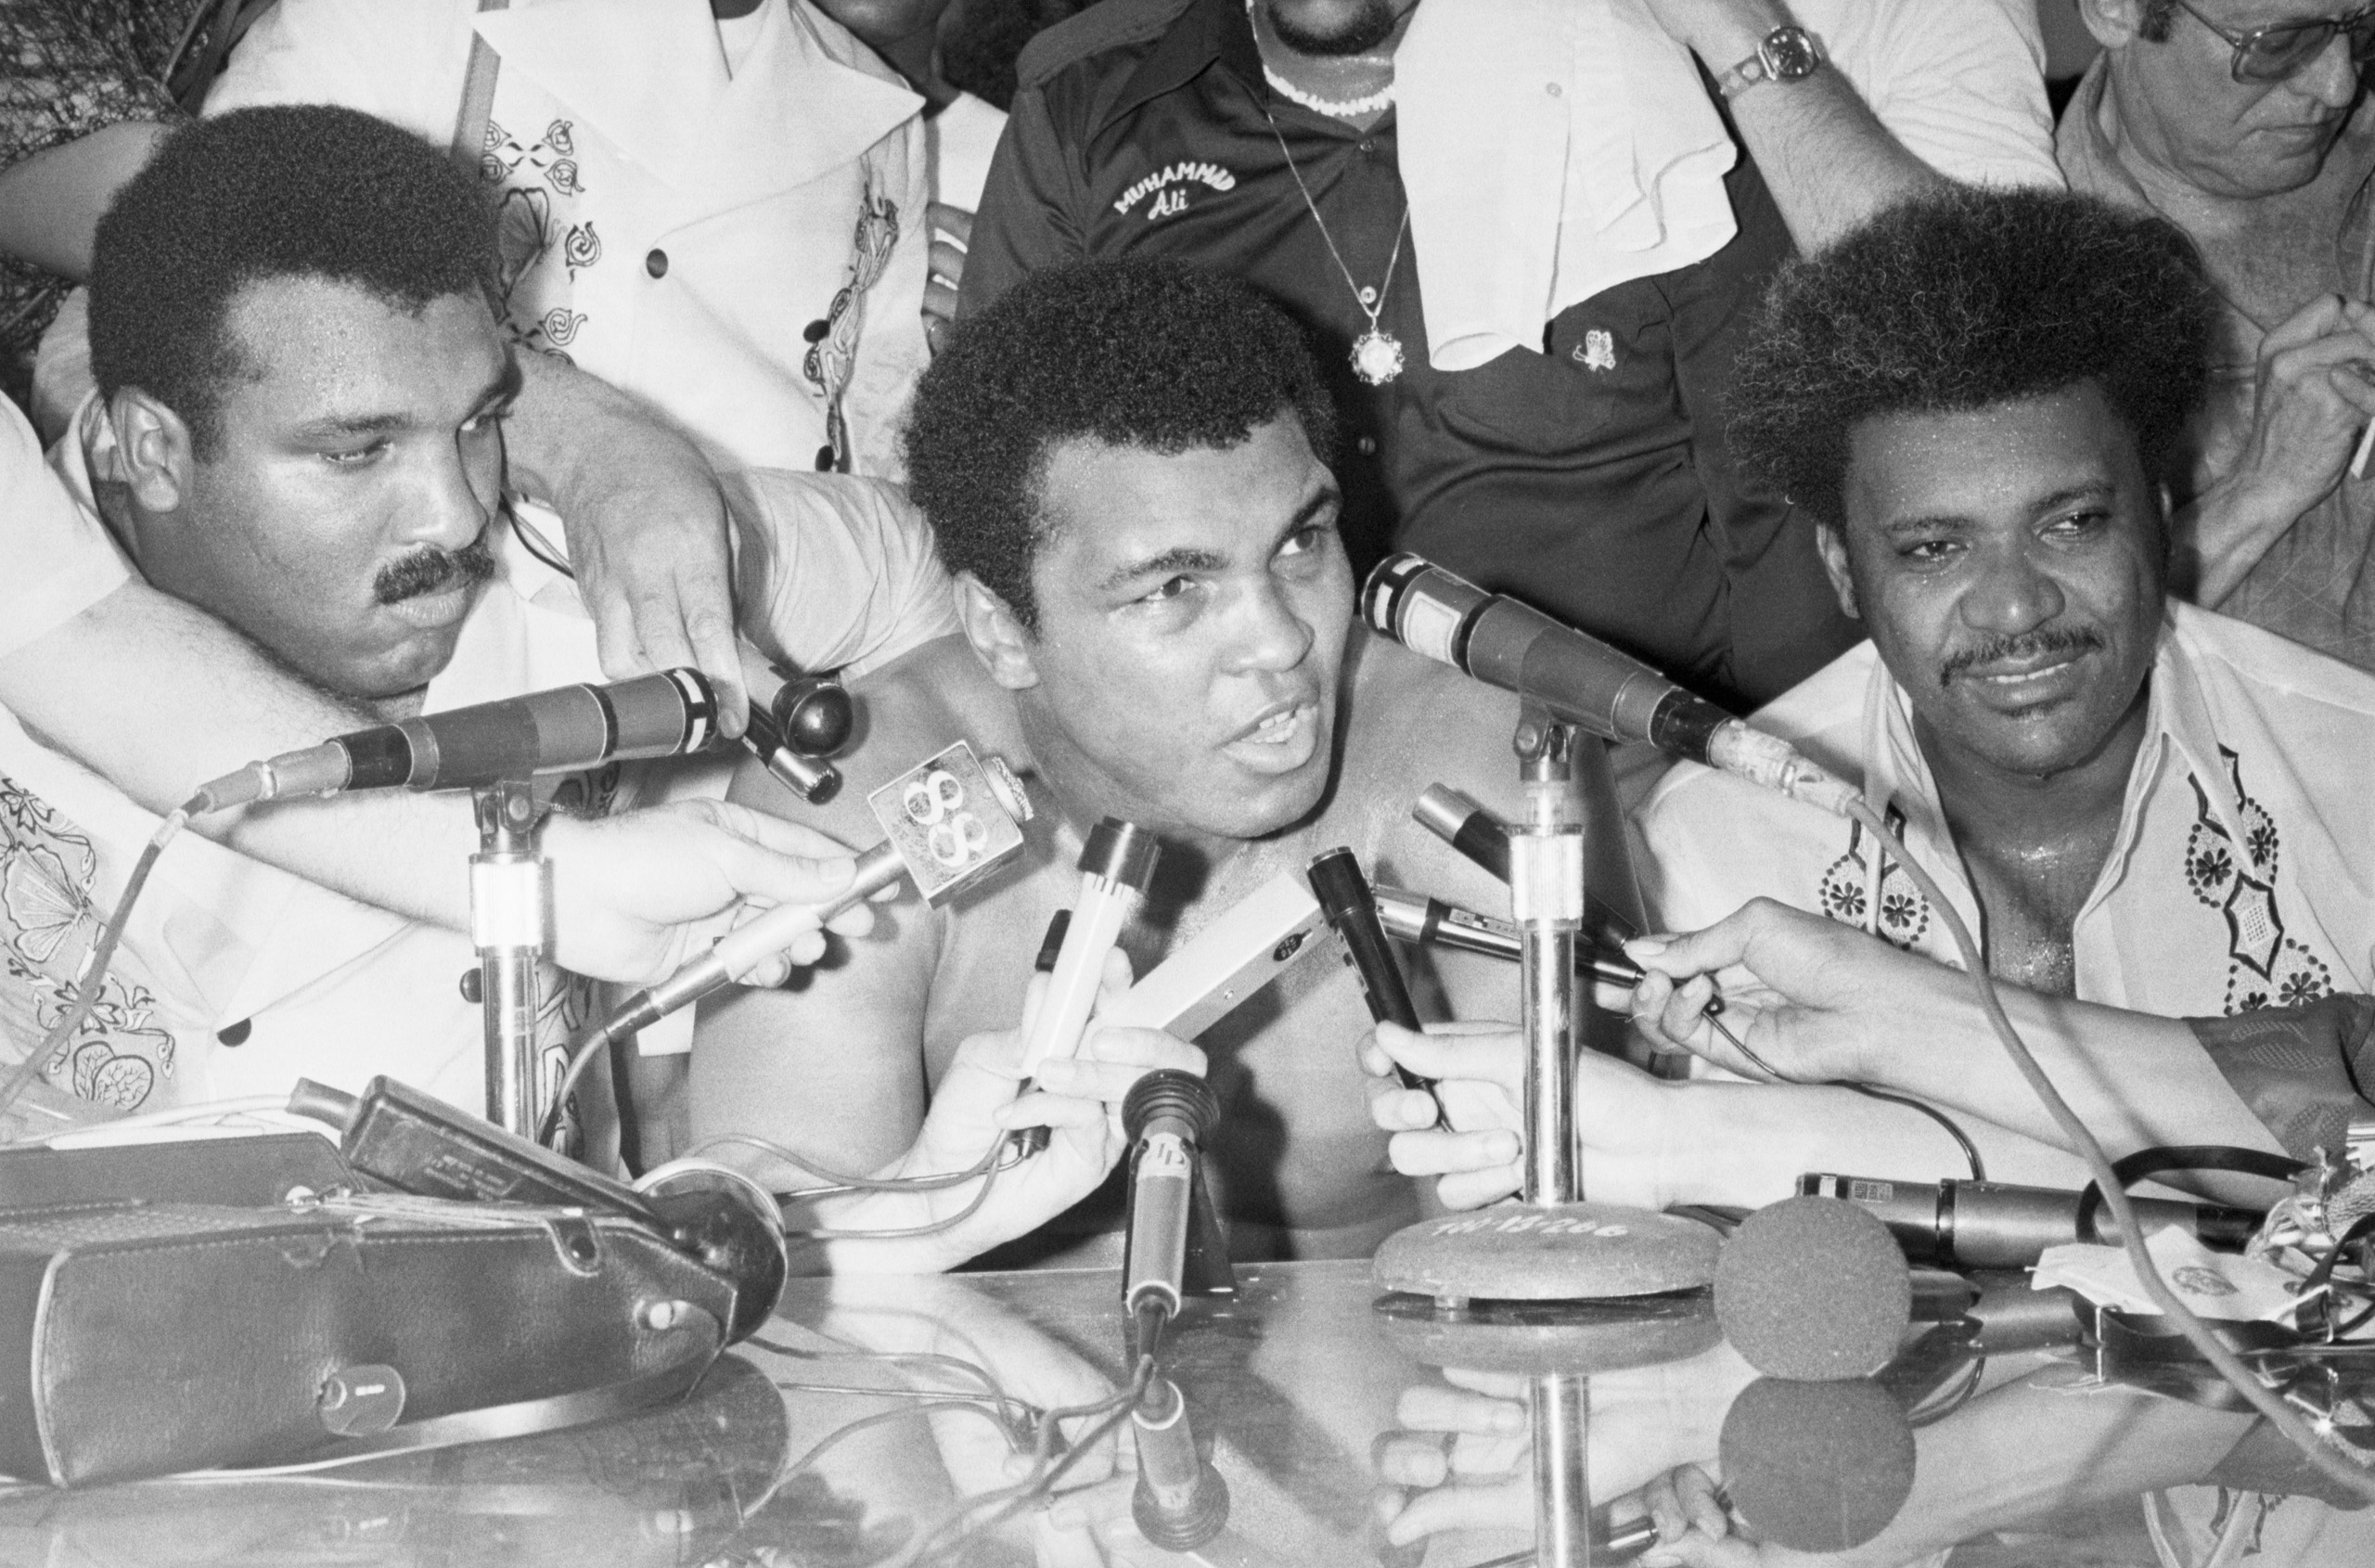 Heavyweight champion of the world Muhammad Ali (C) meets with the press after defeating challenger Smokin' Joe Frazier in the 14th round by TKO. Next to Ali is boxing promoter Don King (R), and Ali's brother Rahaman. Manila, Oct. 1, 1975.